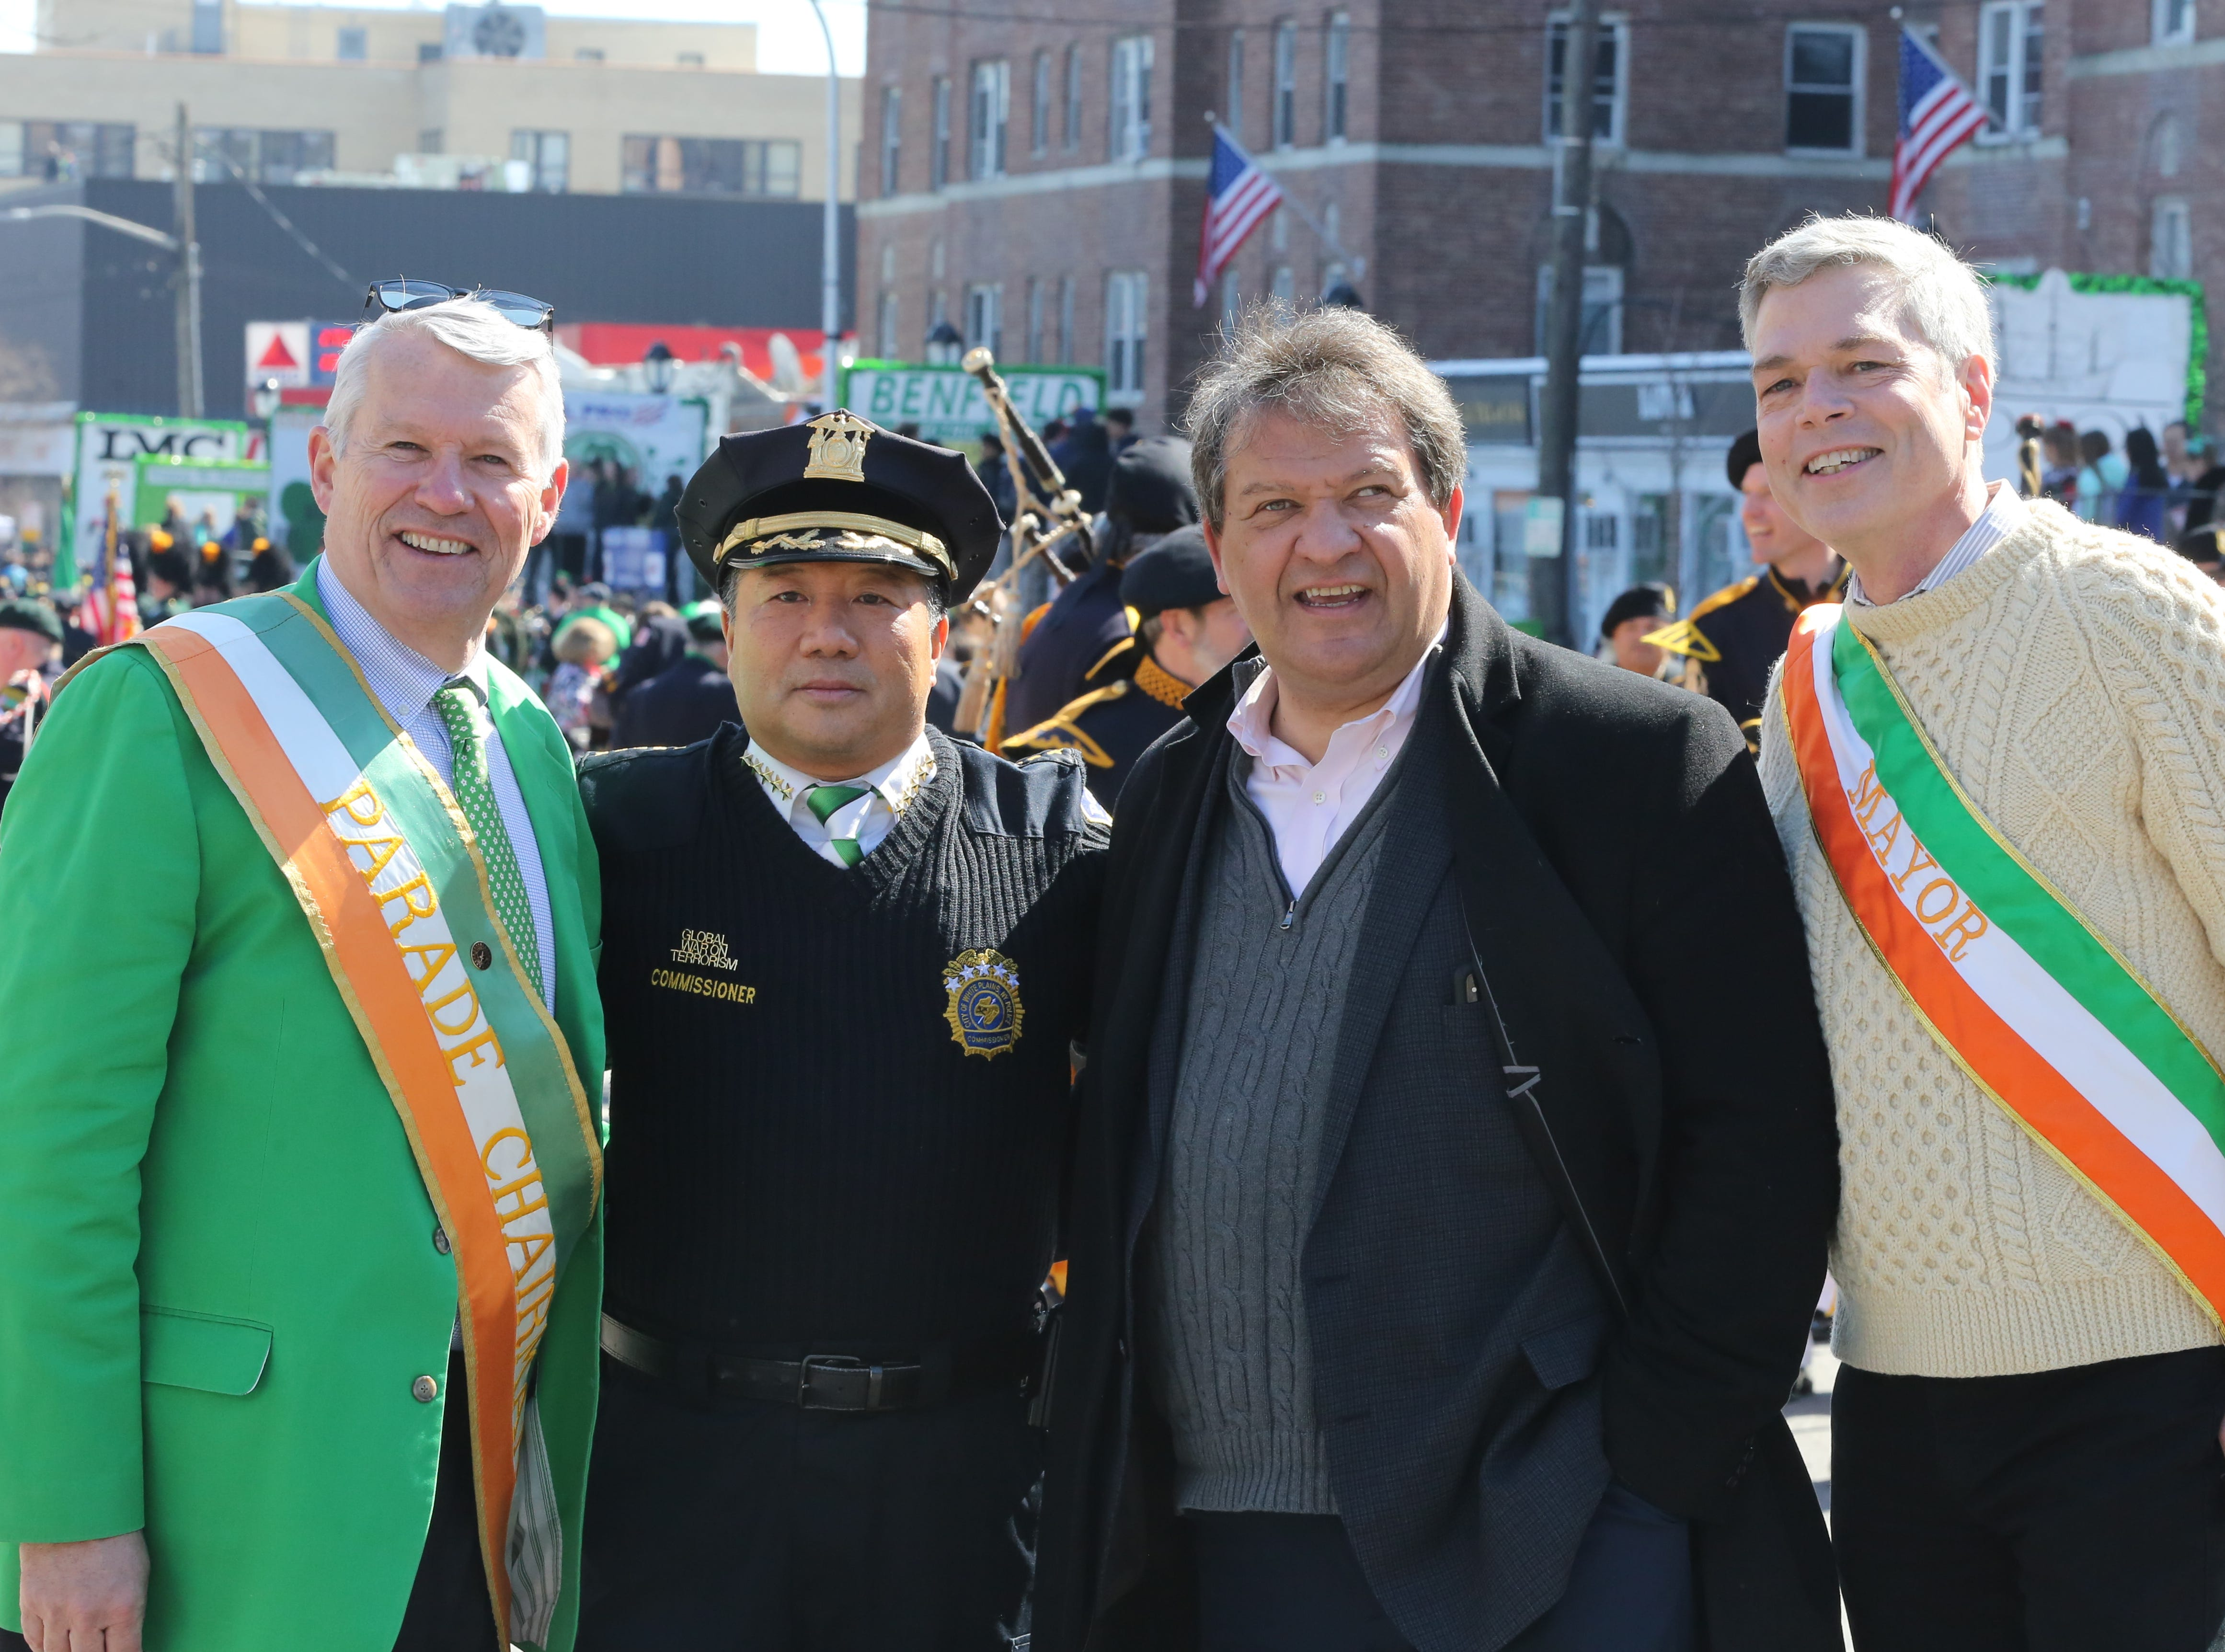 From left, Parade Chair John Martin, White Plains Police Commissioner David Chong, Westchester County Executive George Latimer, and White Plains Mayor Thomas Roach pose for a photo before the start of the 22nd annual White Plains St. Patrick's Day parade along Mamaroneck Avenue in White Plains March 9, 2019.